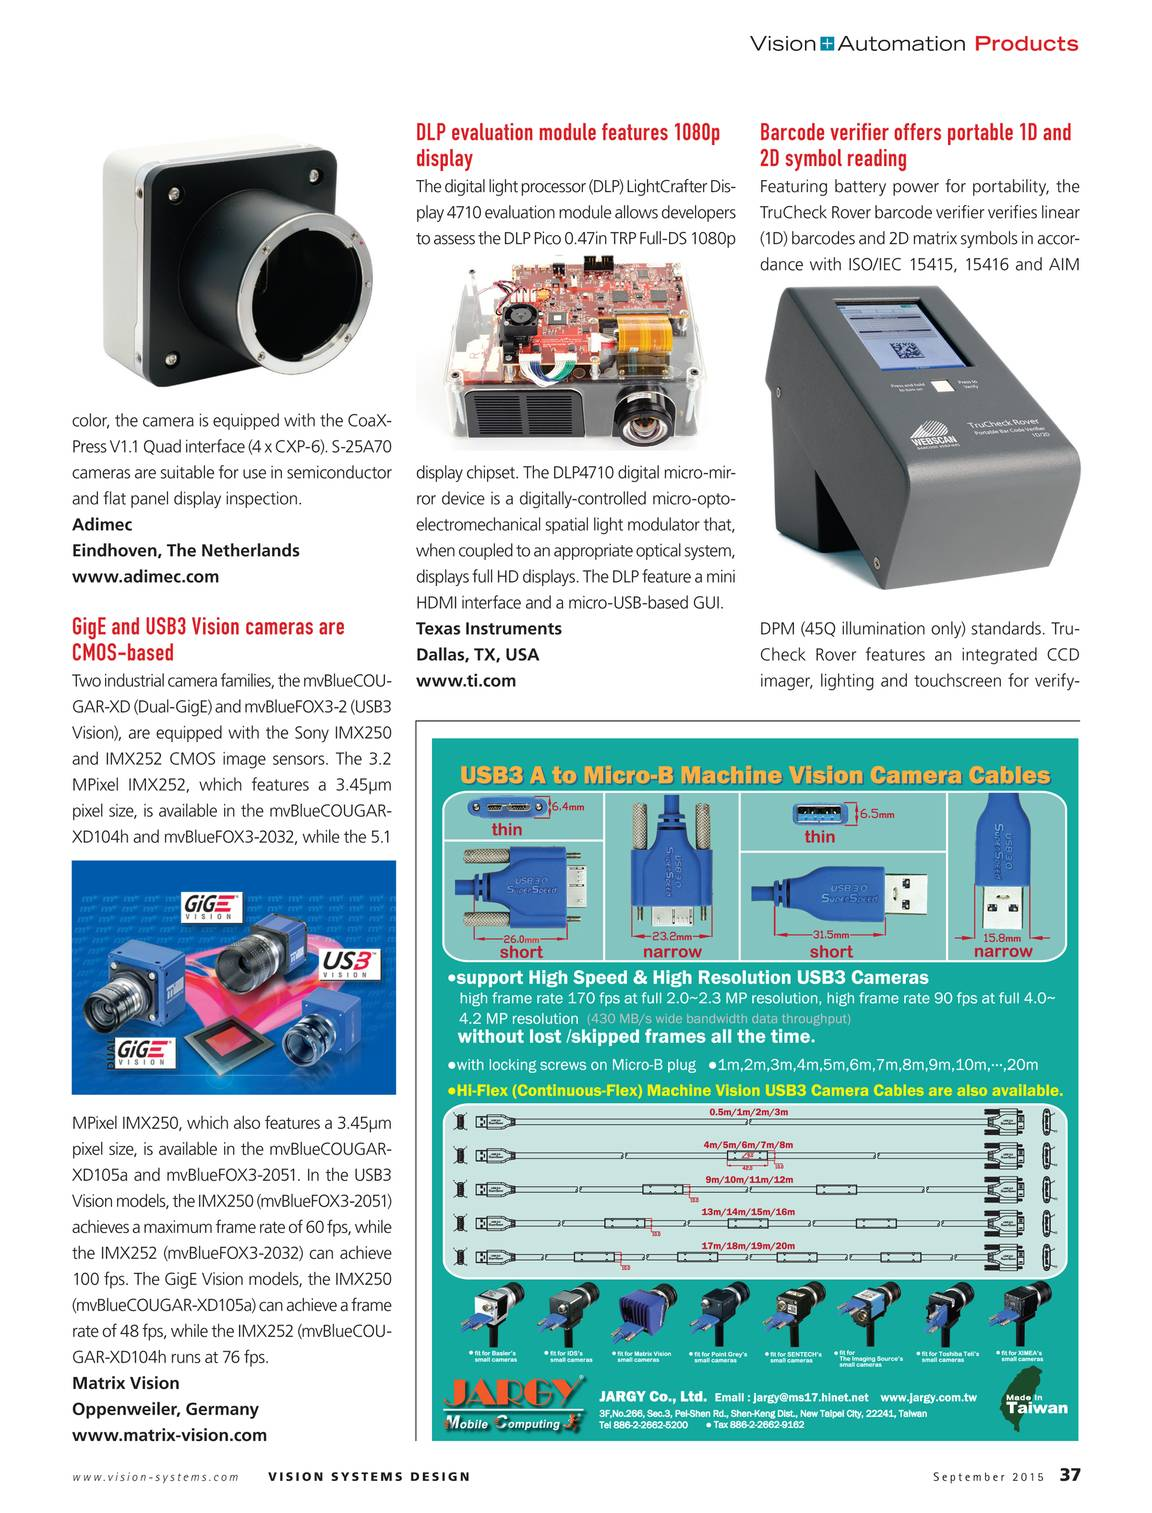 Vision Systems - September 2015 - page 38